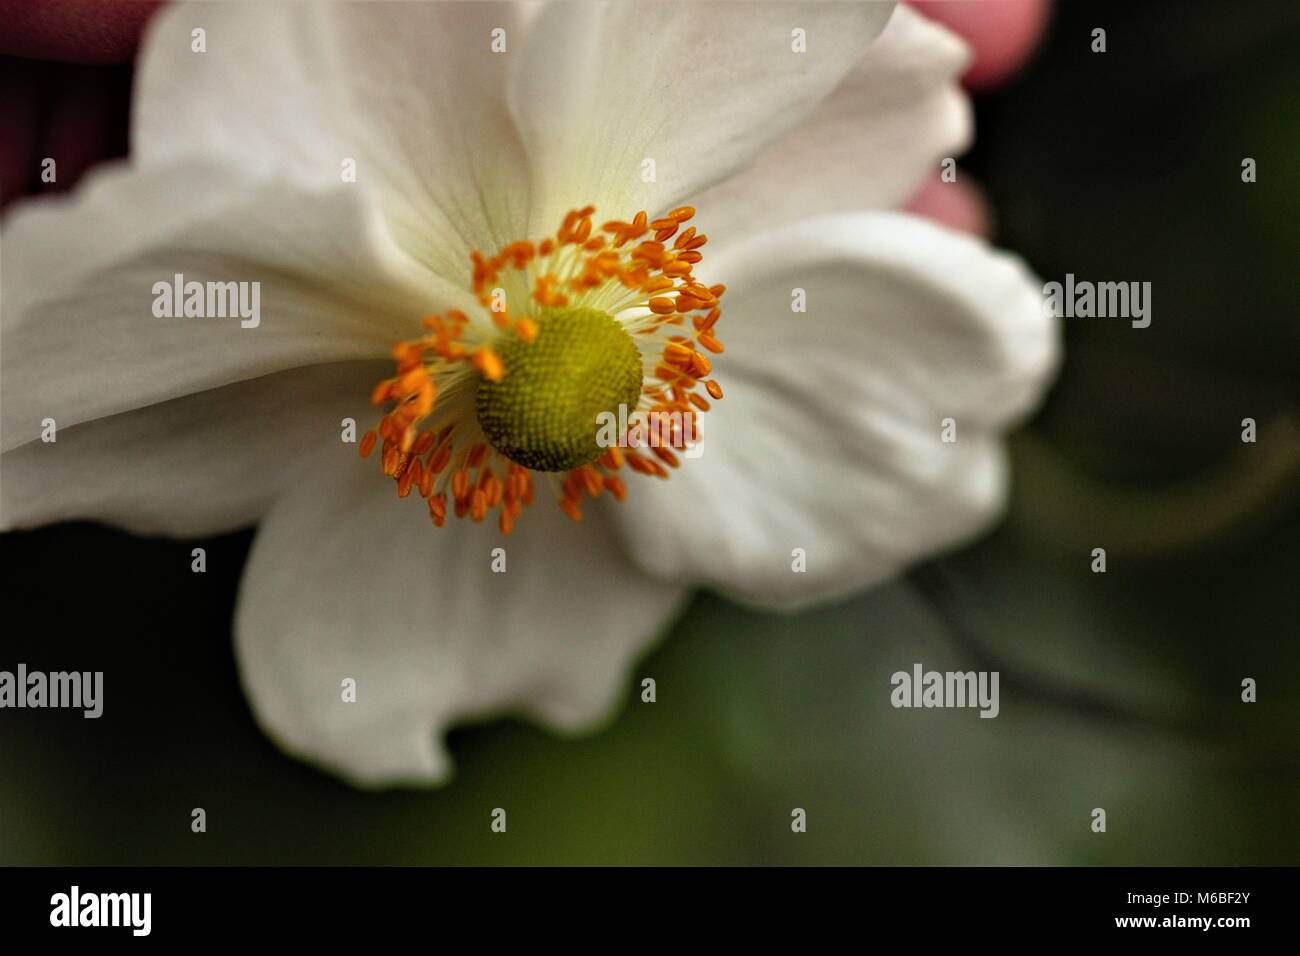 Microseeds white sharp green detailed flower with creativity and hopefulness, blurry background with bold powerful - Stock Image